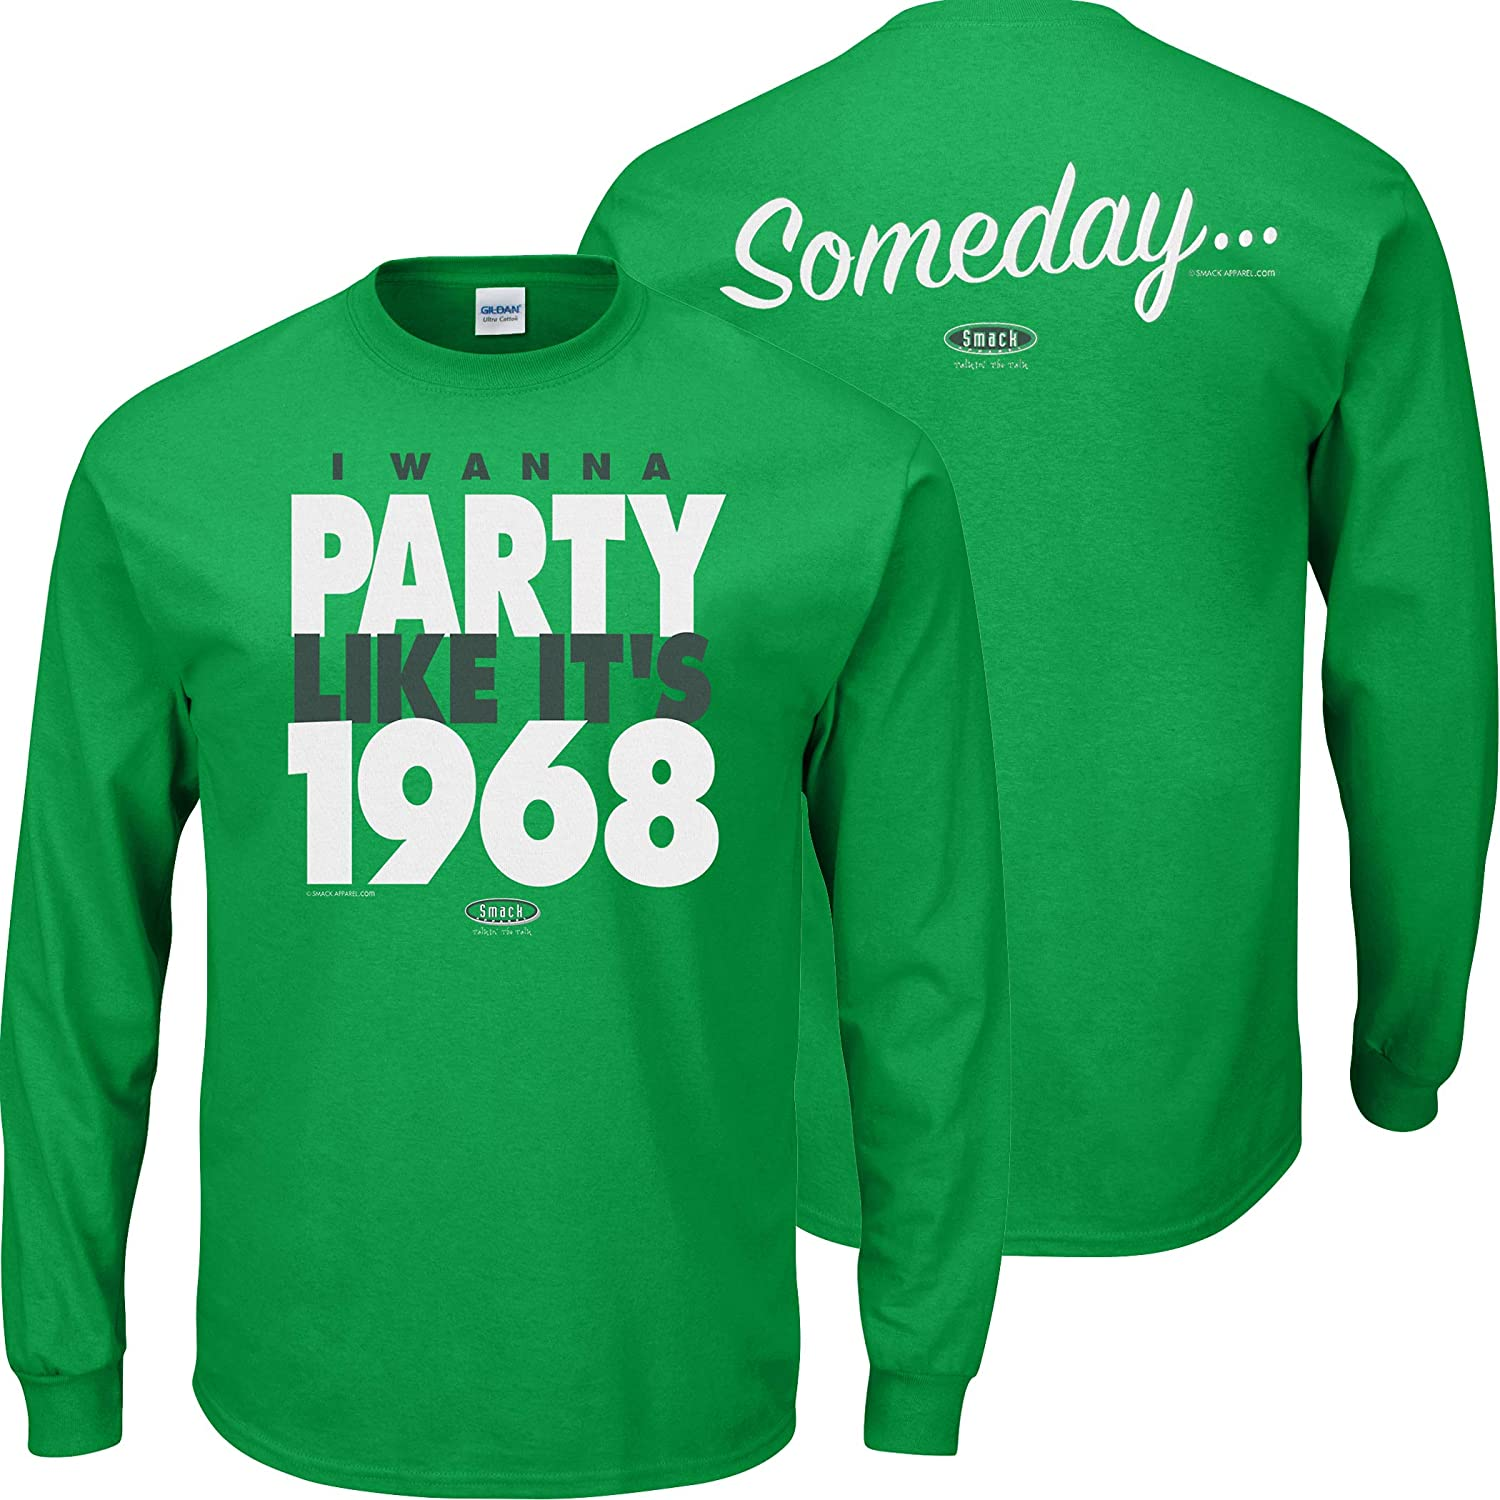 Someday/… I Wanna Party Like Its 1968 Smack Apparel New York Football Fans Green T-Shirt Sm-5X